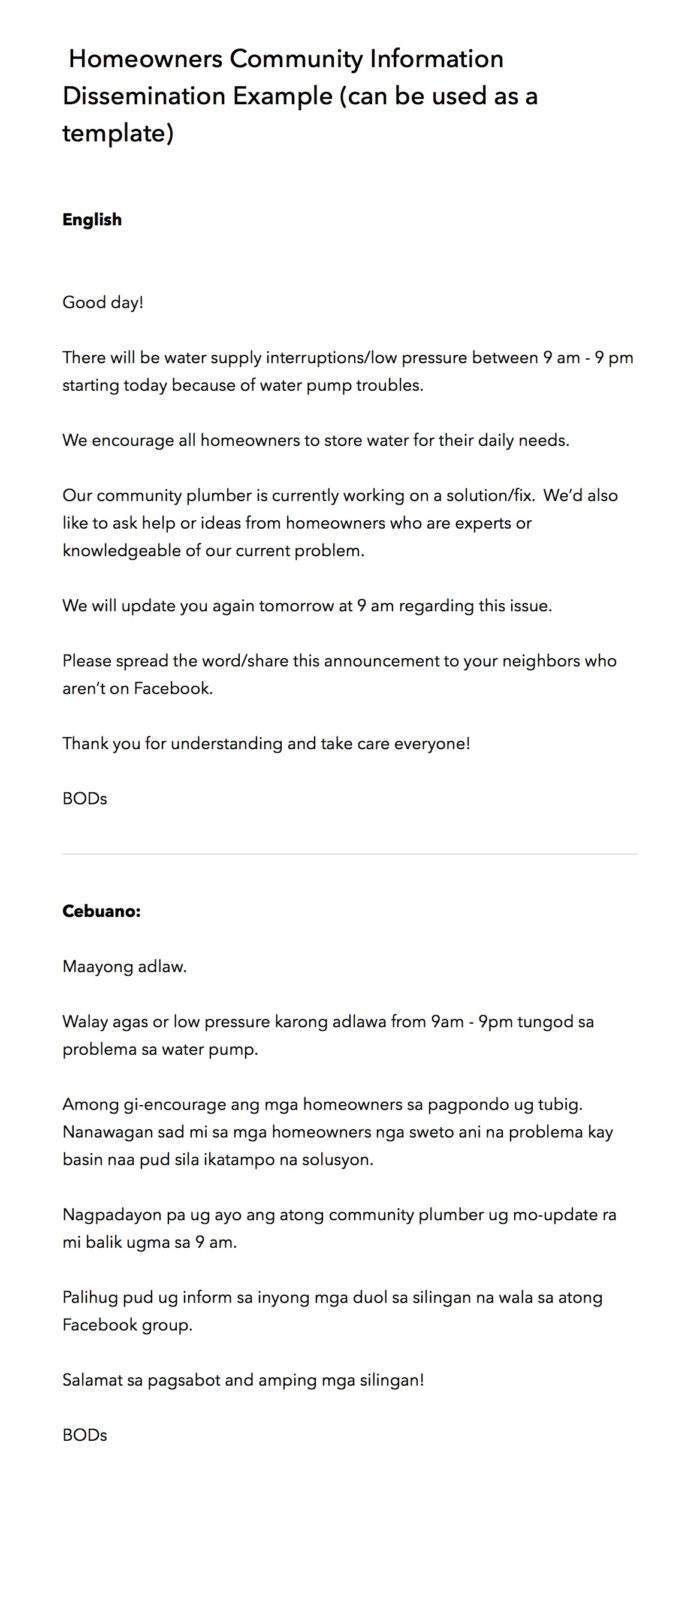 Homeowners Community Information Dissemination Example (can be used as a template)